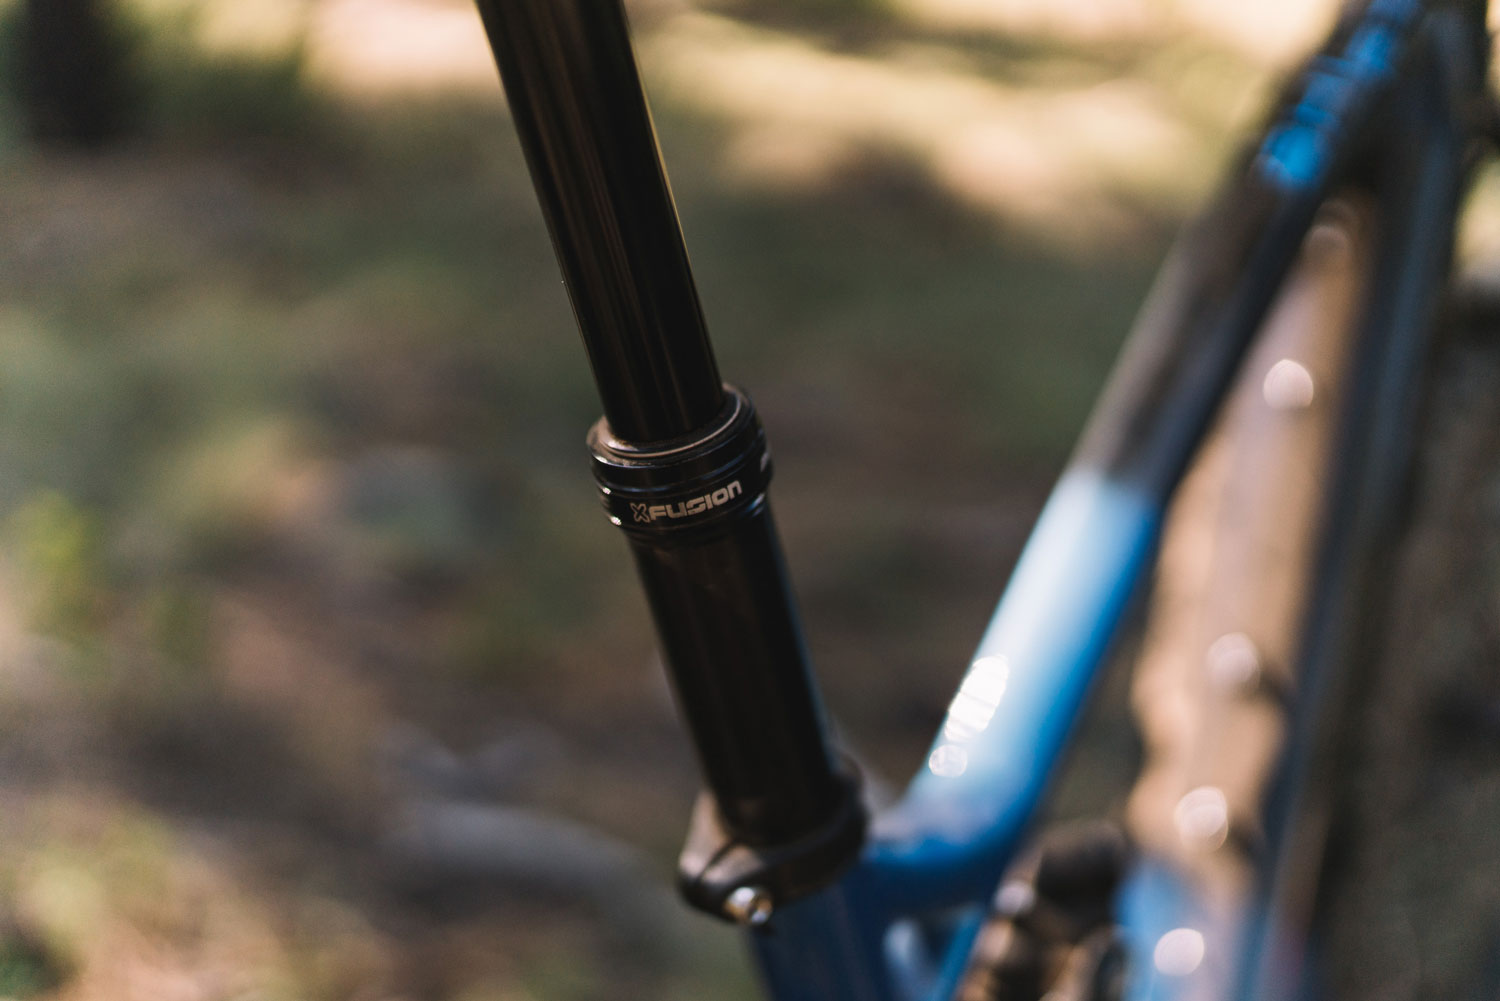 Dissected: Haro Shift Plus i/O 9 dropper seatpost